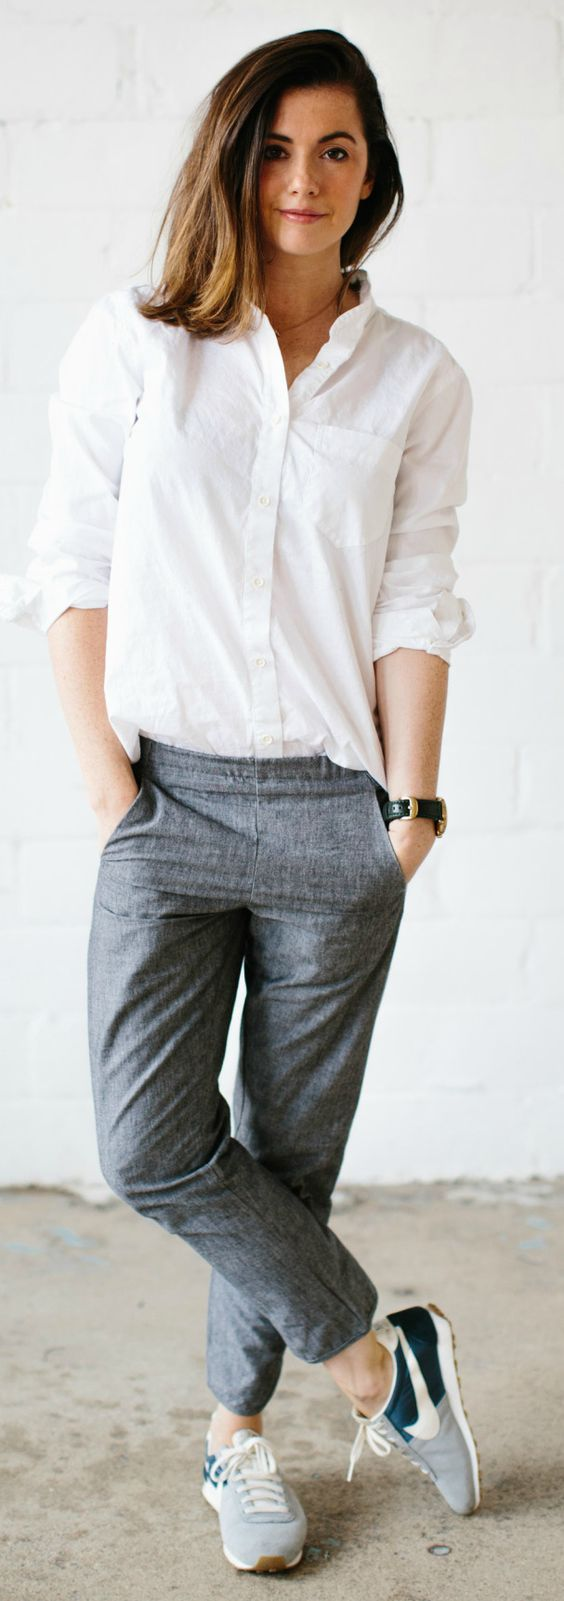 Kate Arends pulls of a simple yet classic look of a plain white shirt with grey trousers and trainers! Shops: not specified.